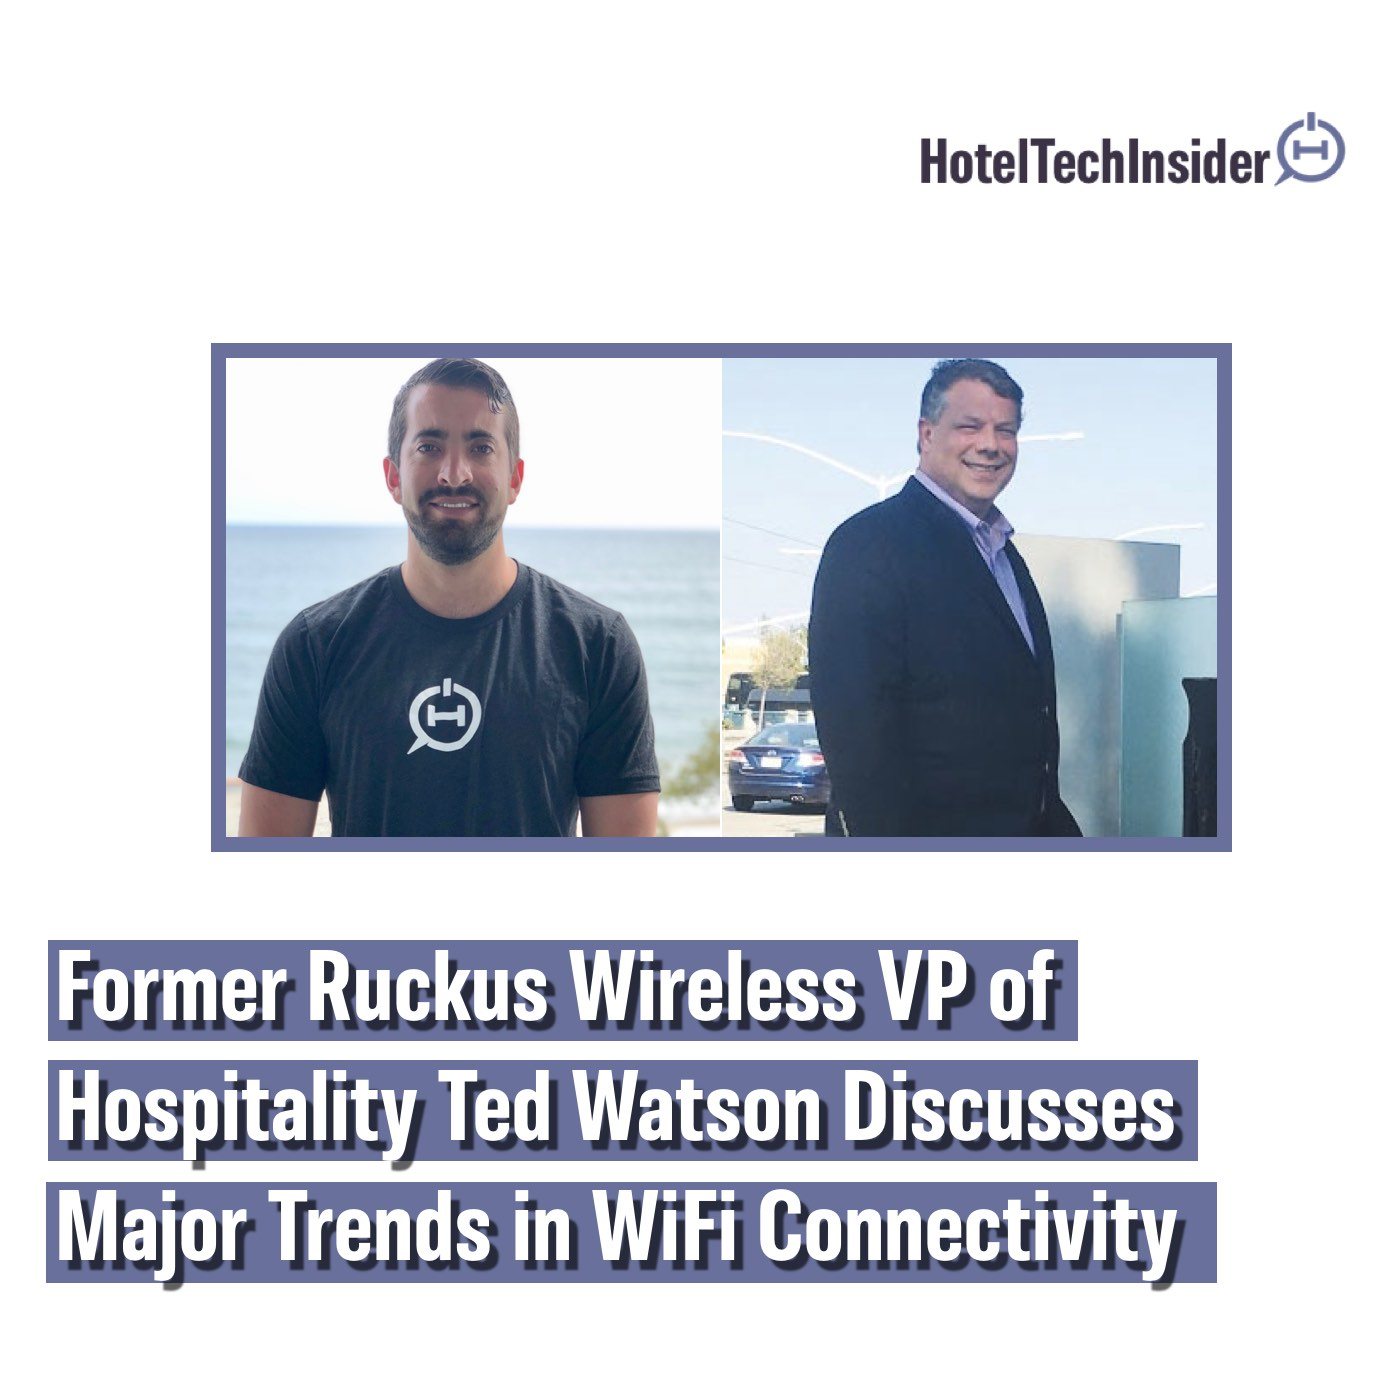 Former Ruckus Wireless VP of Hospitality Ted Watson Discusses the Recent $800M Acquisition, Major Trends in WiFi Connectivity and the Critical Role HTNG Plays for Innovation